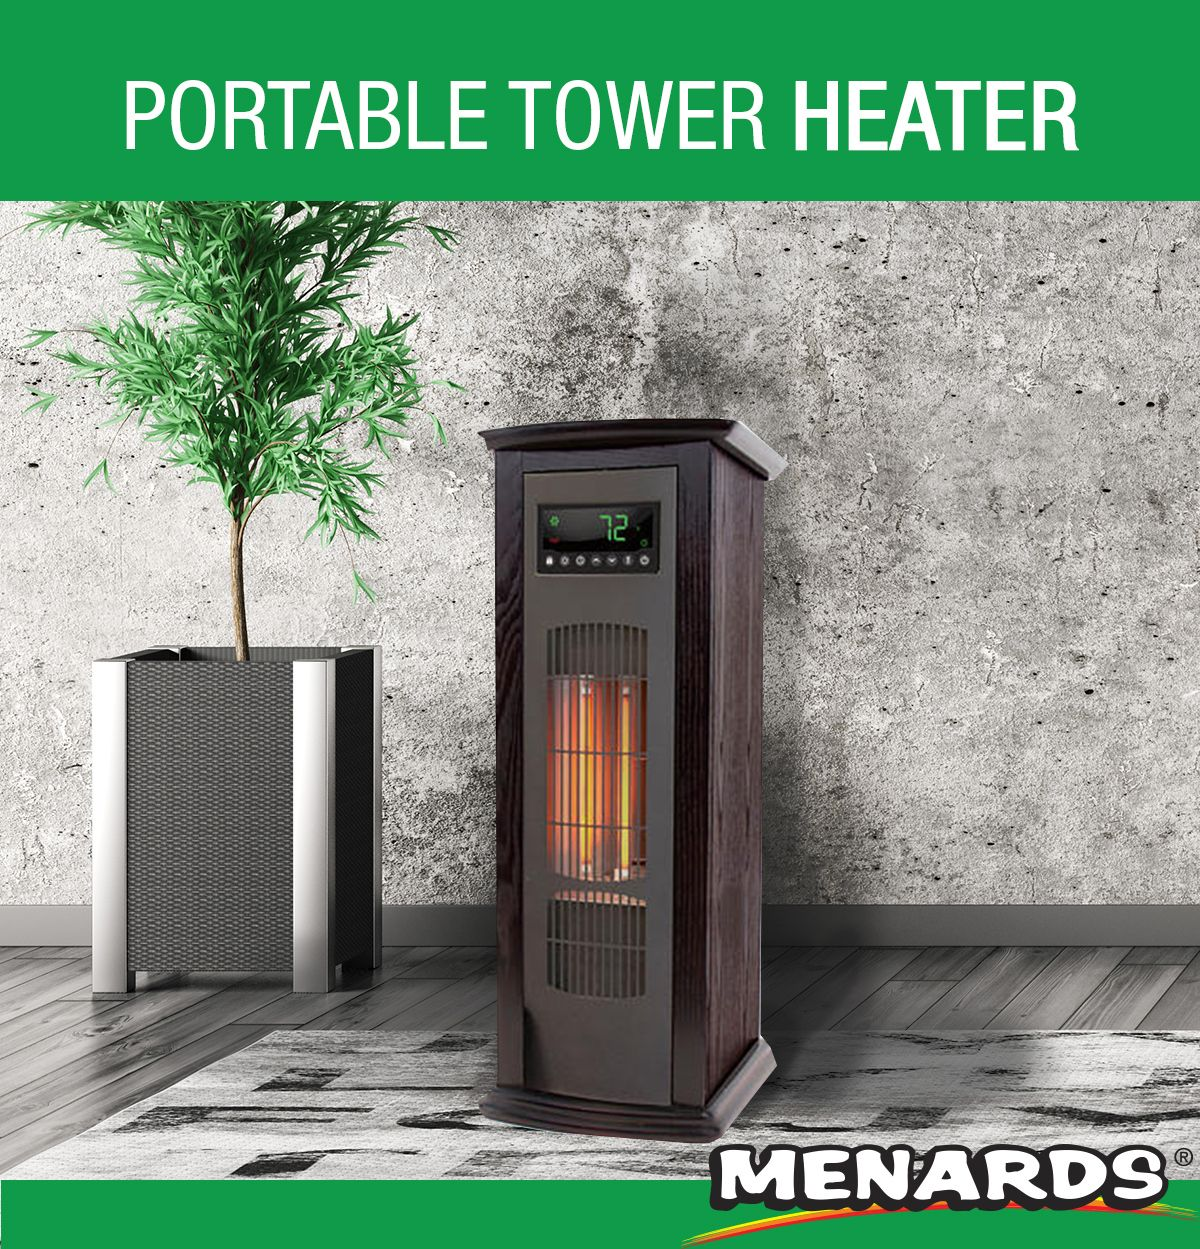 Portable Electric Infrared Heater With 3 Quartz Elements And A